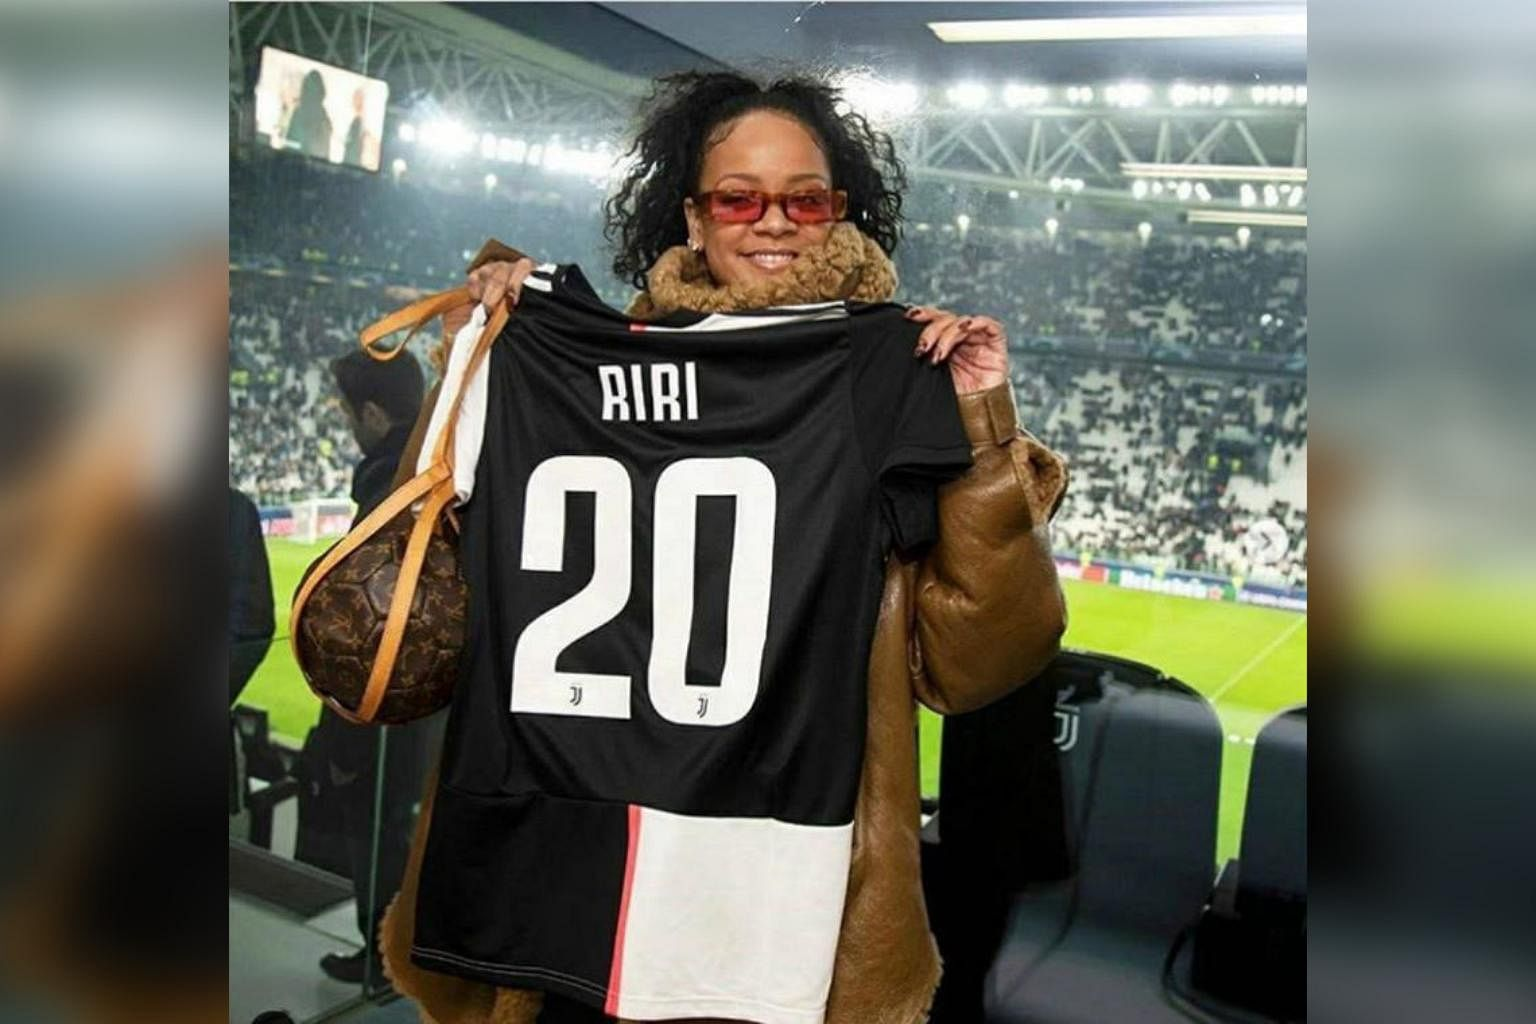 Who is that Juventus 'player' given jersey number 20? Rihanna,  Entertainment News & Top Stories - The Straits Times